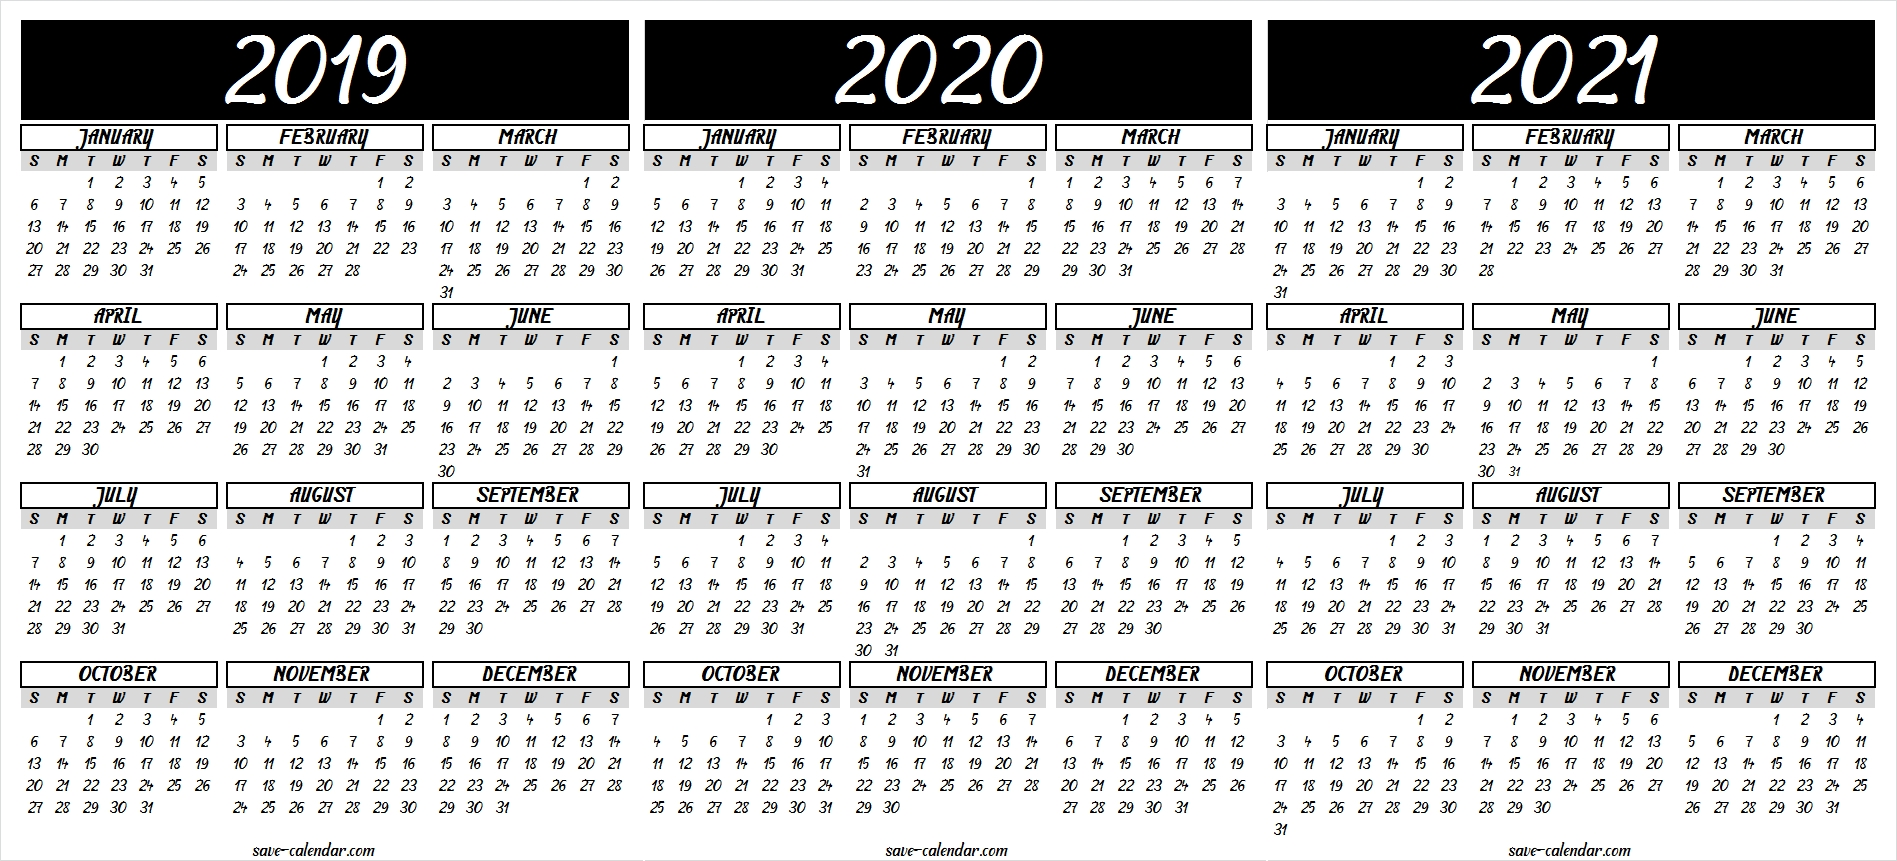 Free 2021 Calendar Pdf With Good Background